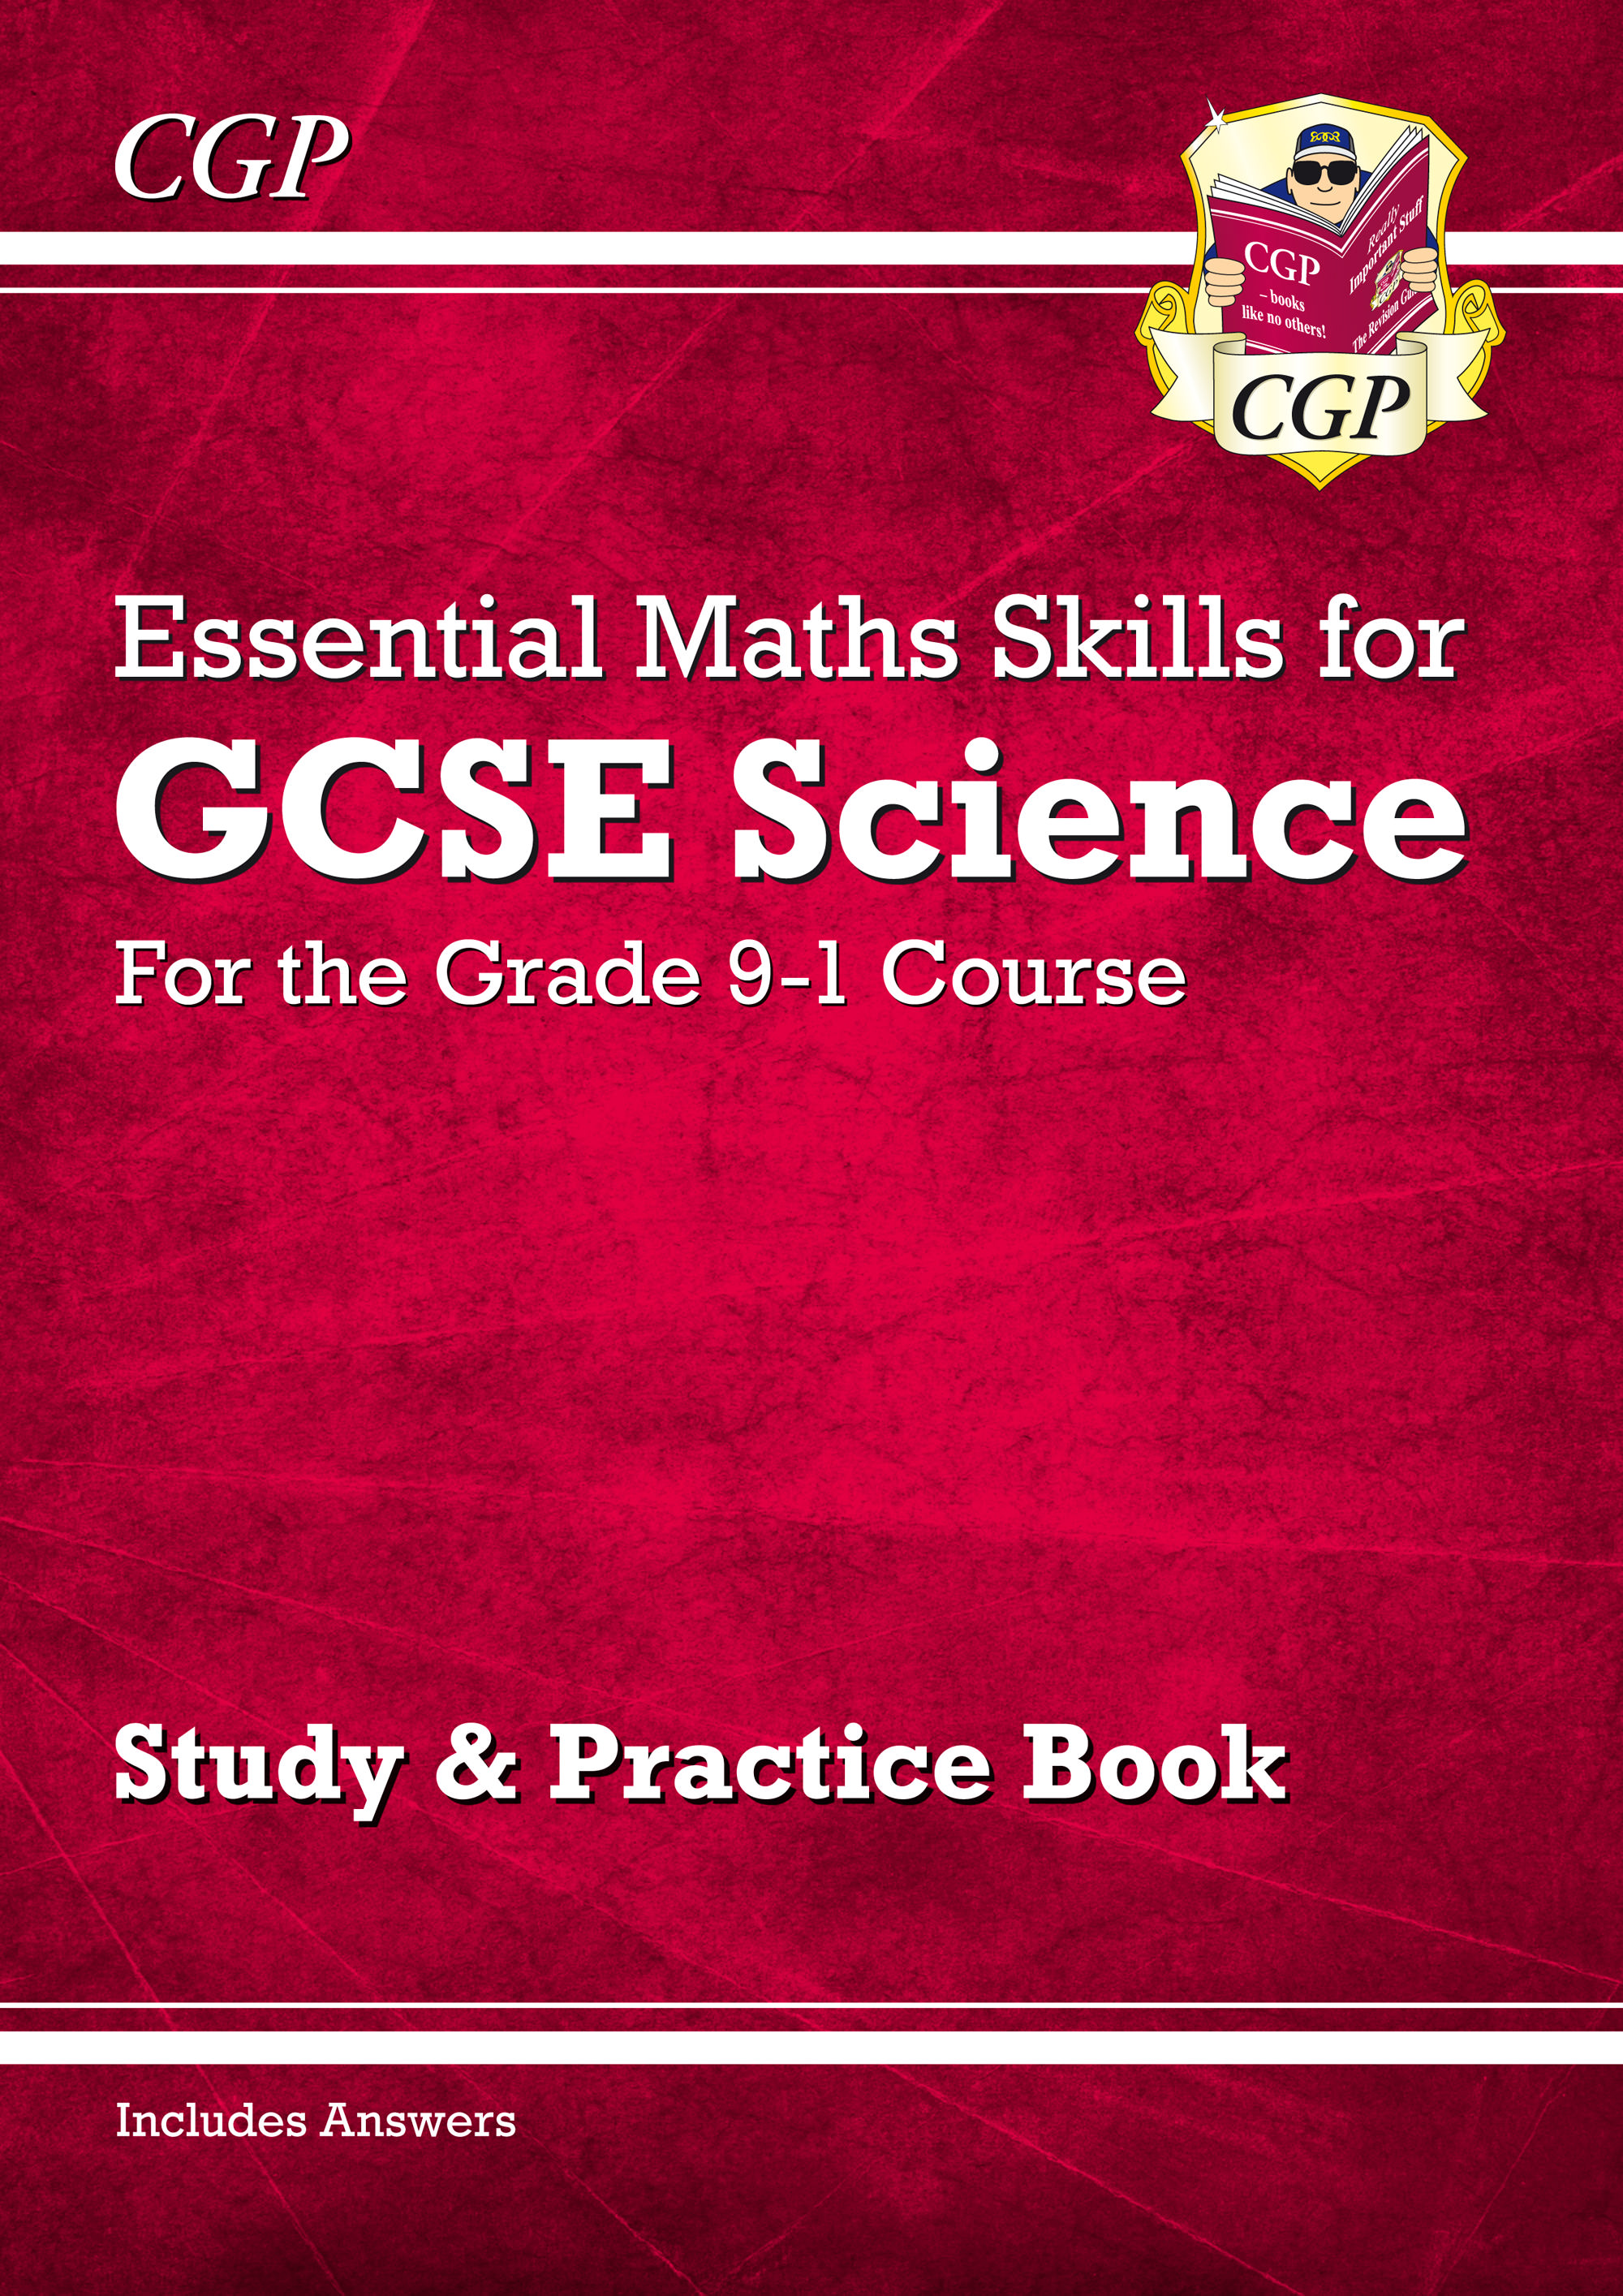 SMR42 - Grade 9-1 GCSE Science: Essential Maths Skills - Study & Practice